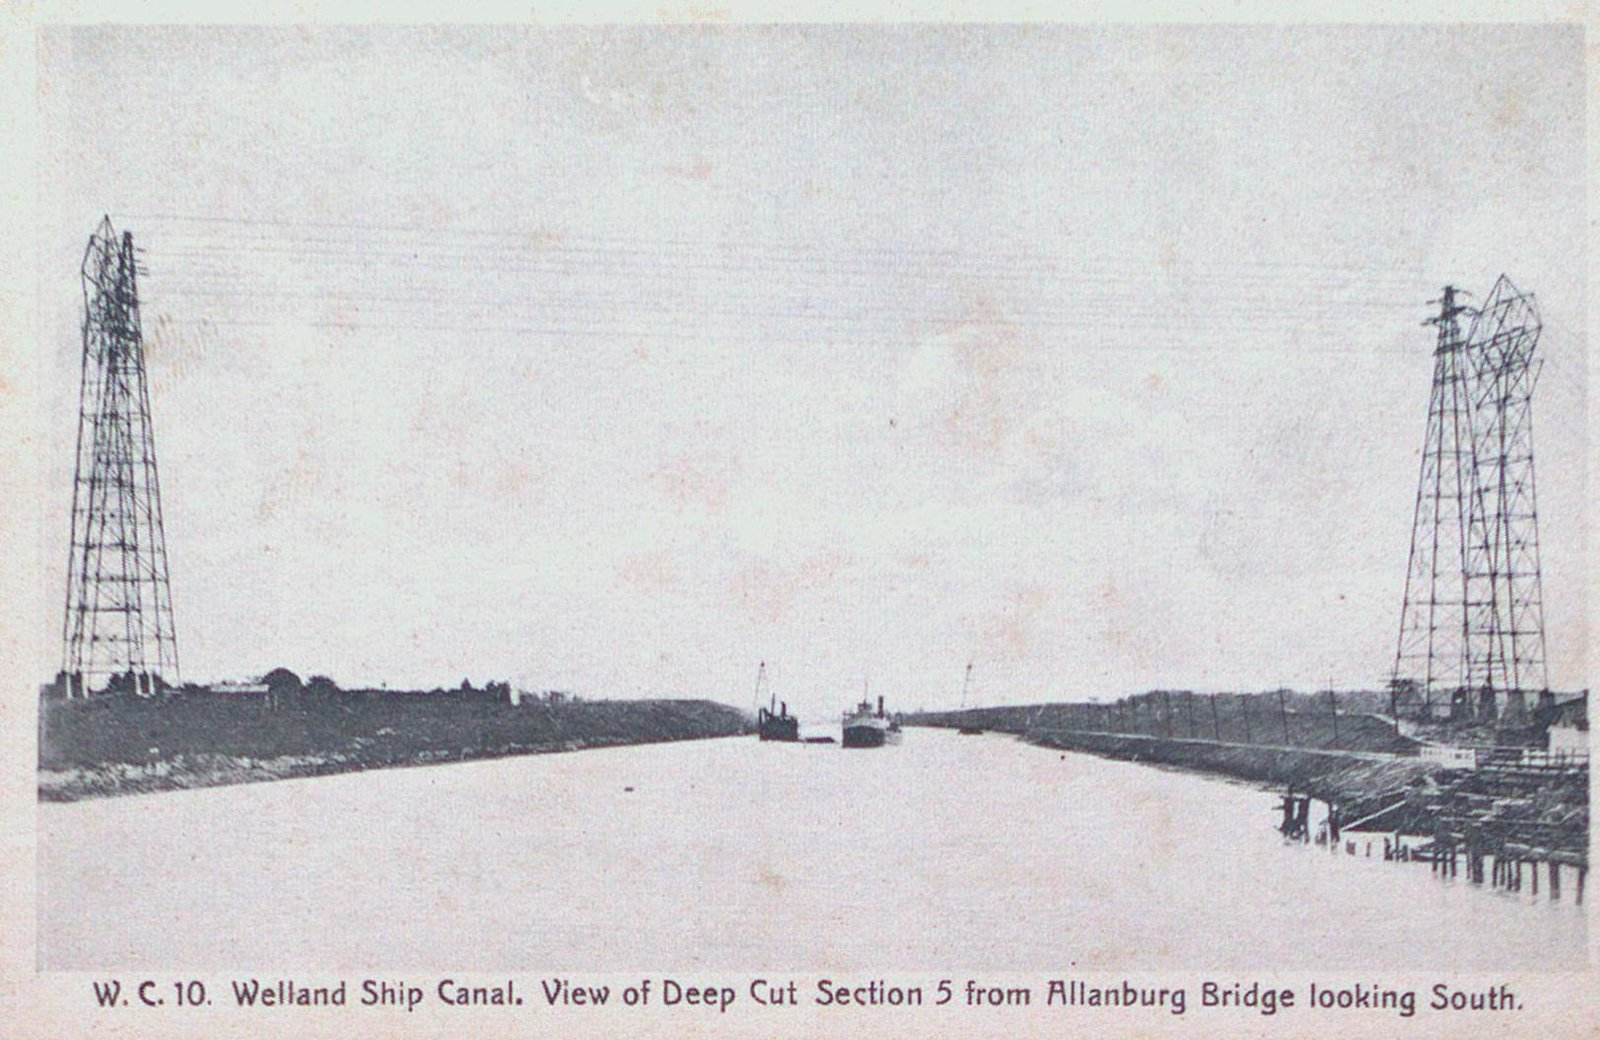 Deep Cut, Section Five, as seen from the Allanburg Bridge on the Welland Ship Canal